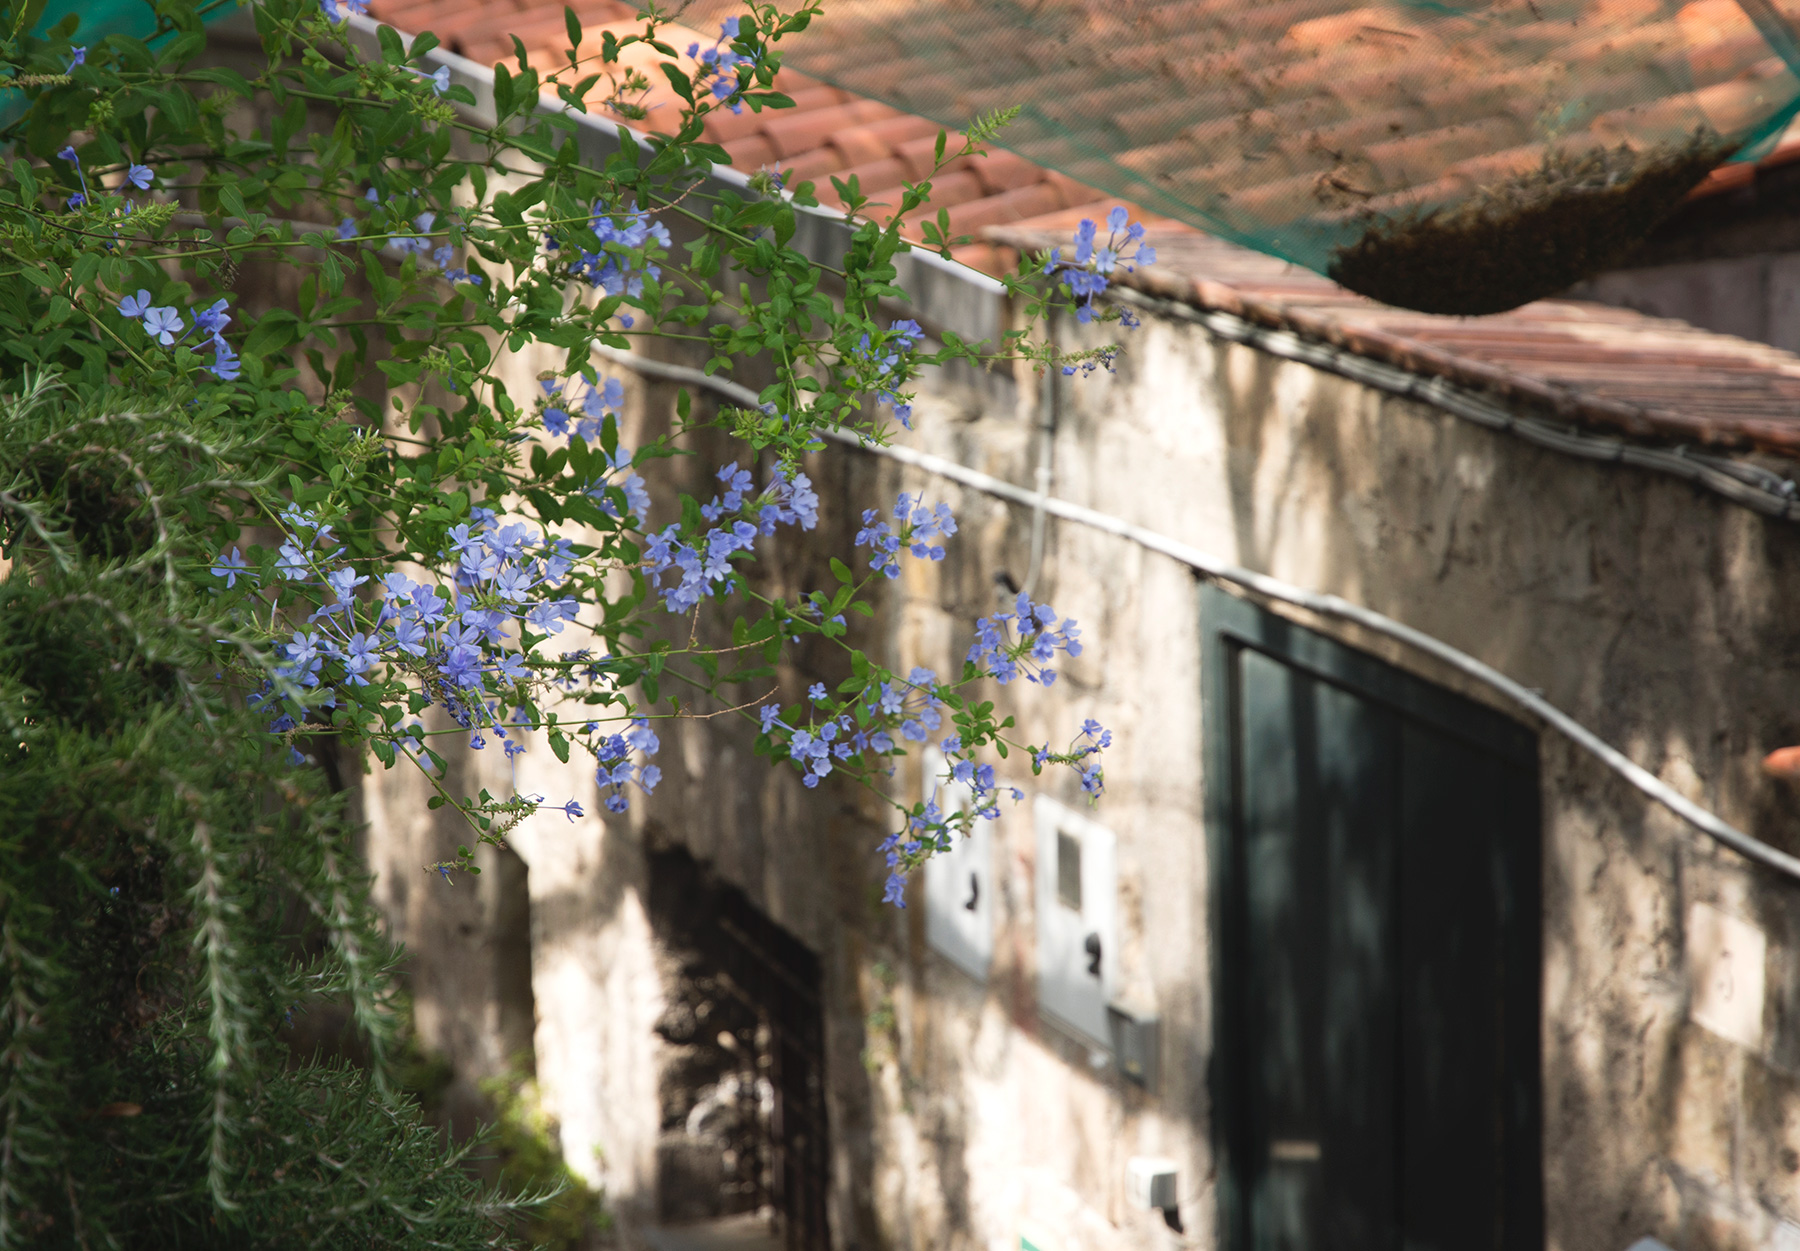 Blue flowers hanging over alley